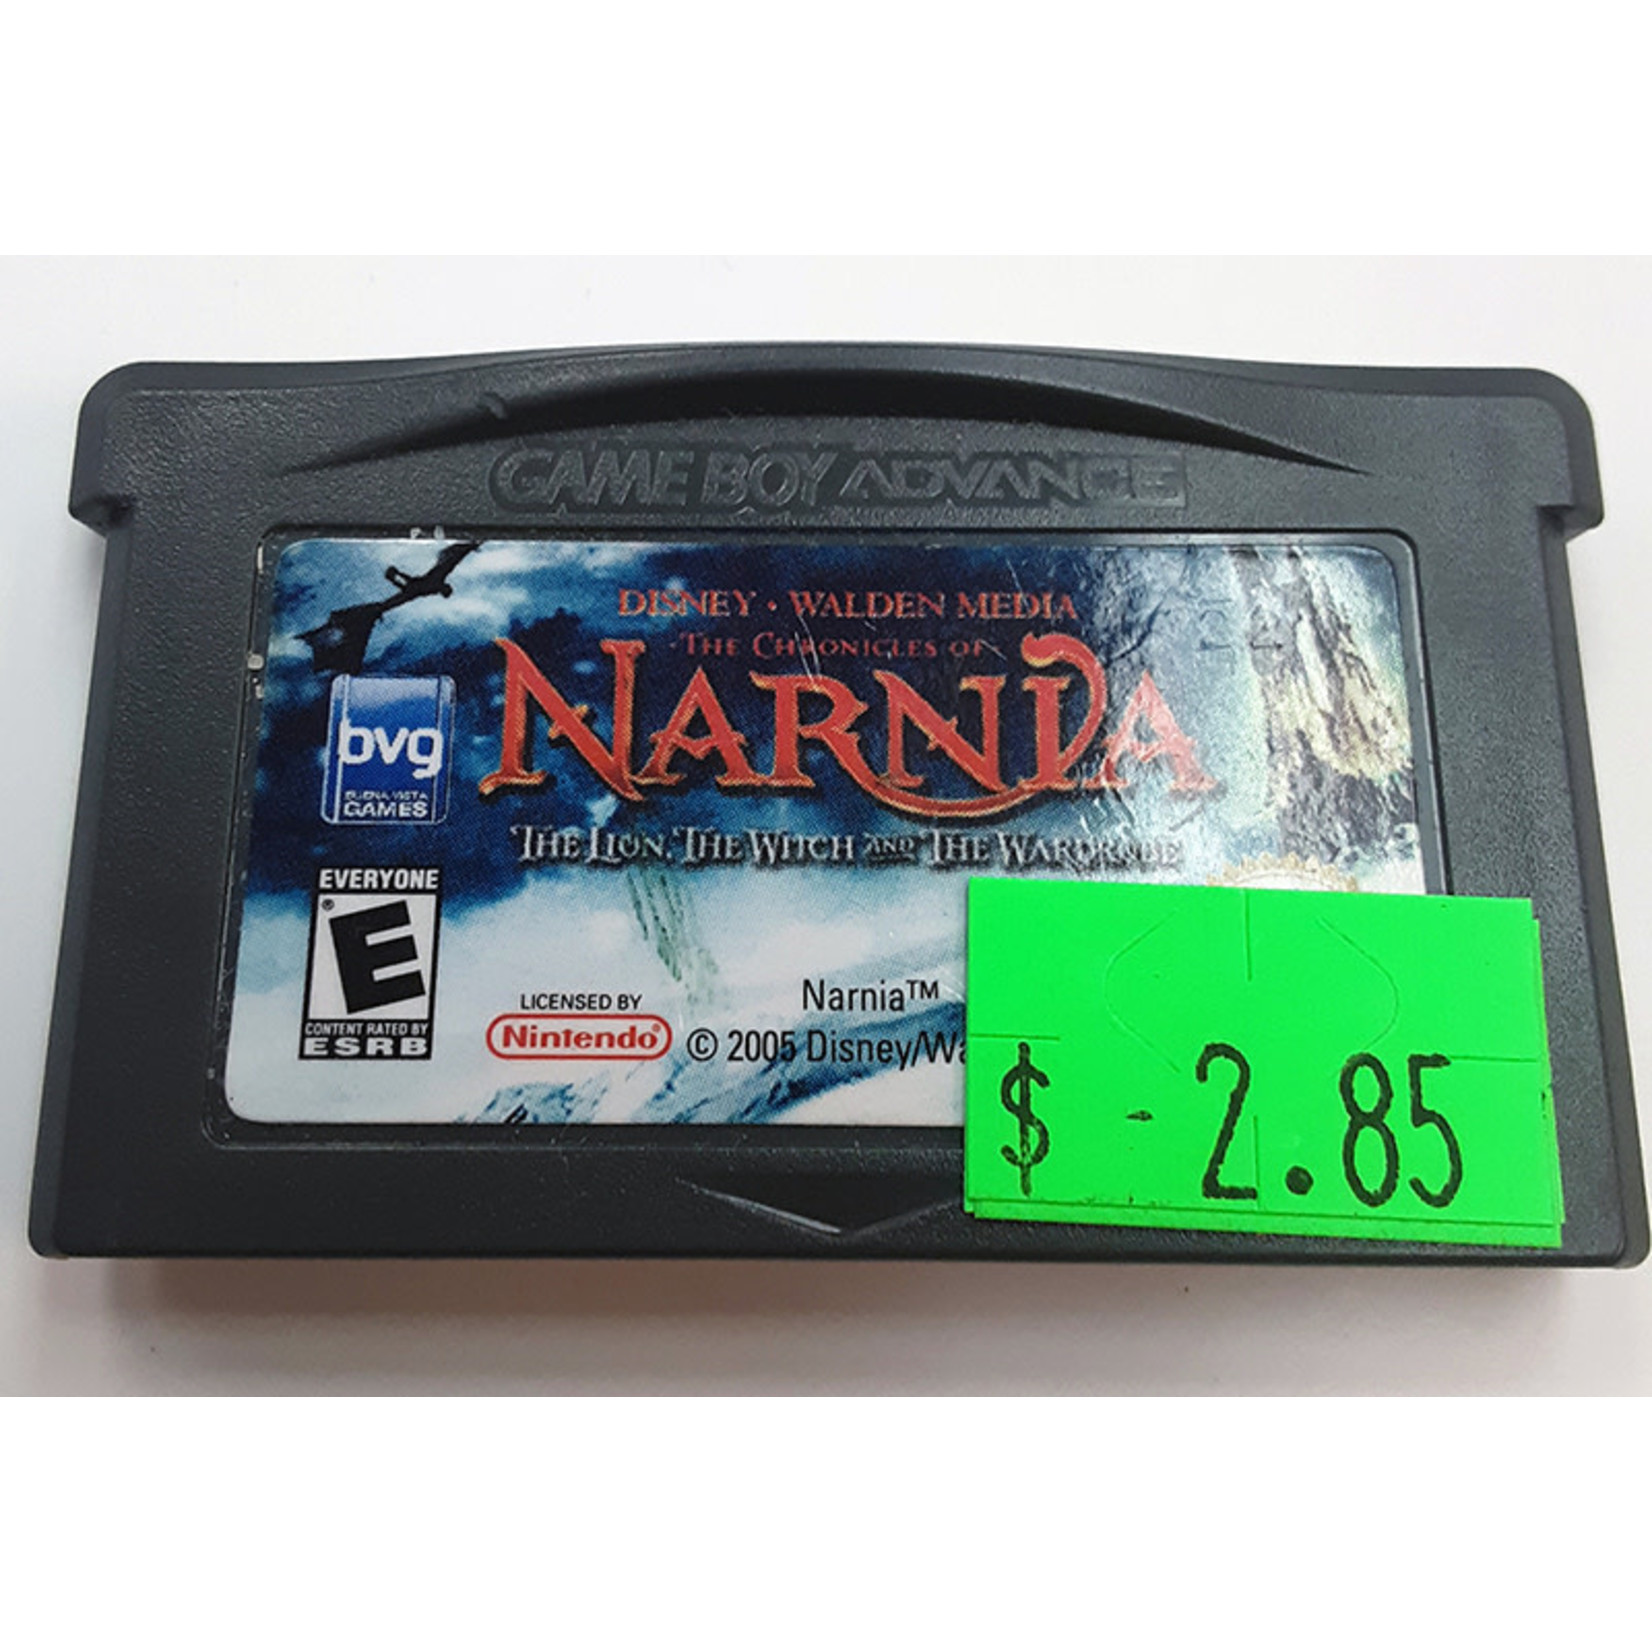 GBAu-The Chronicles of Narnia The Lion, The Witch, and The Wardrobe (cartridge)